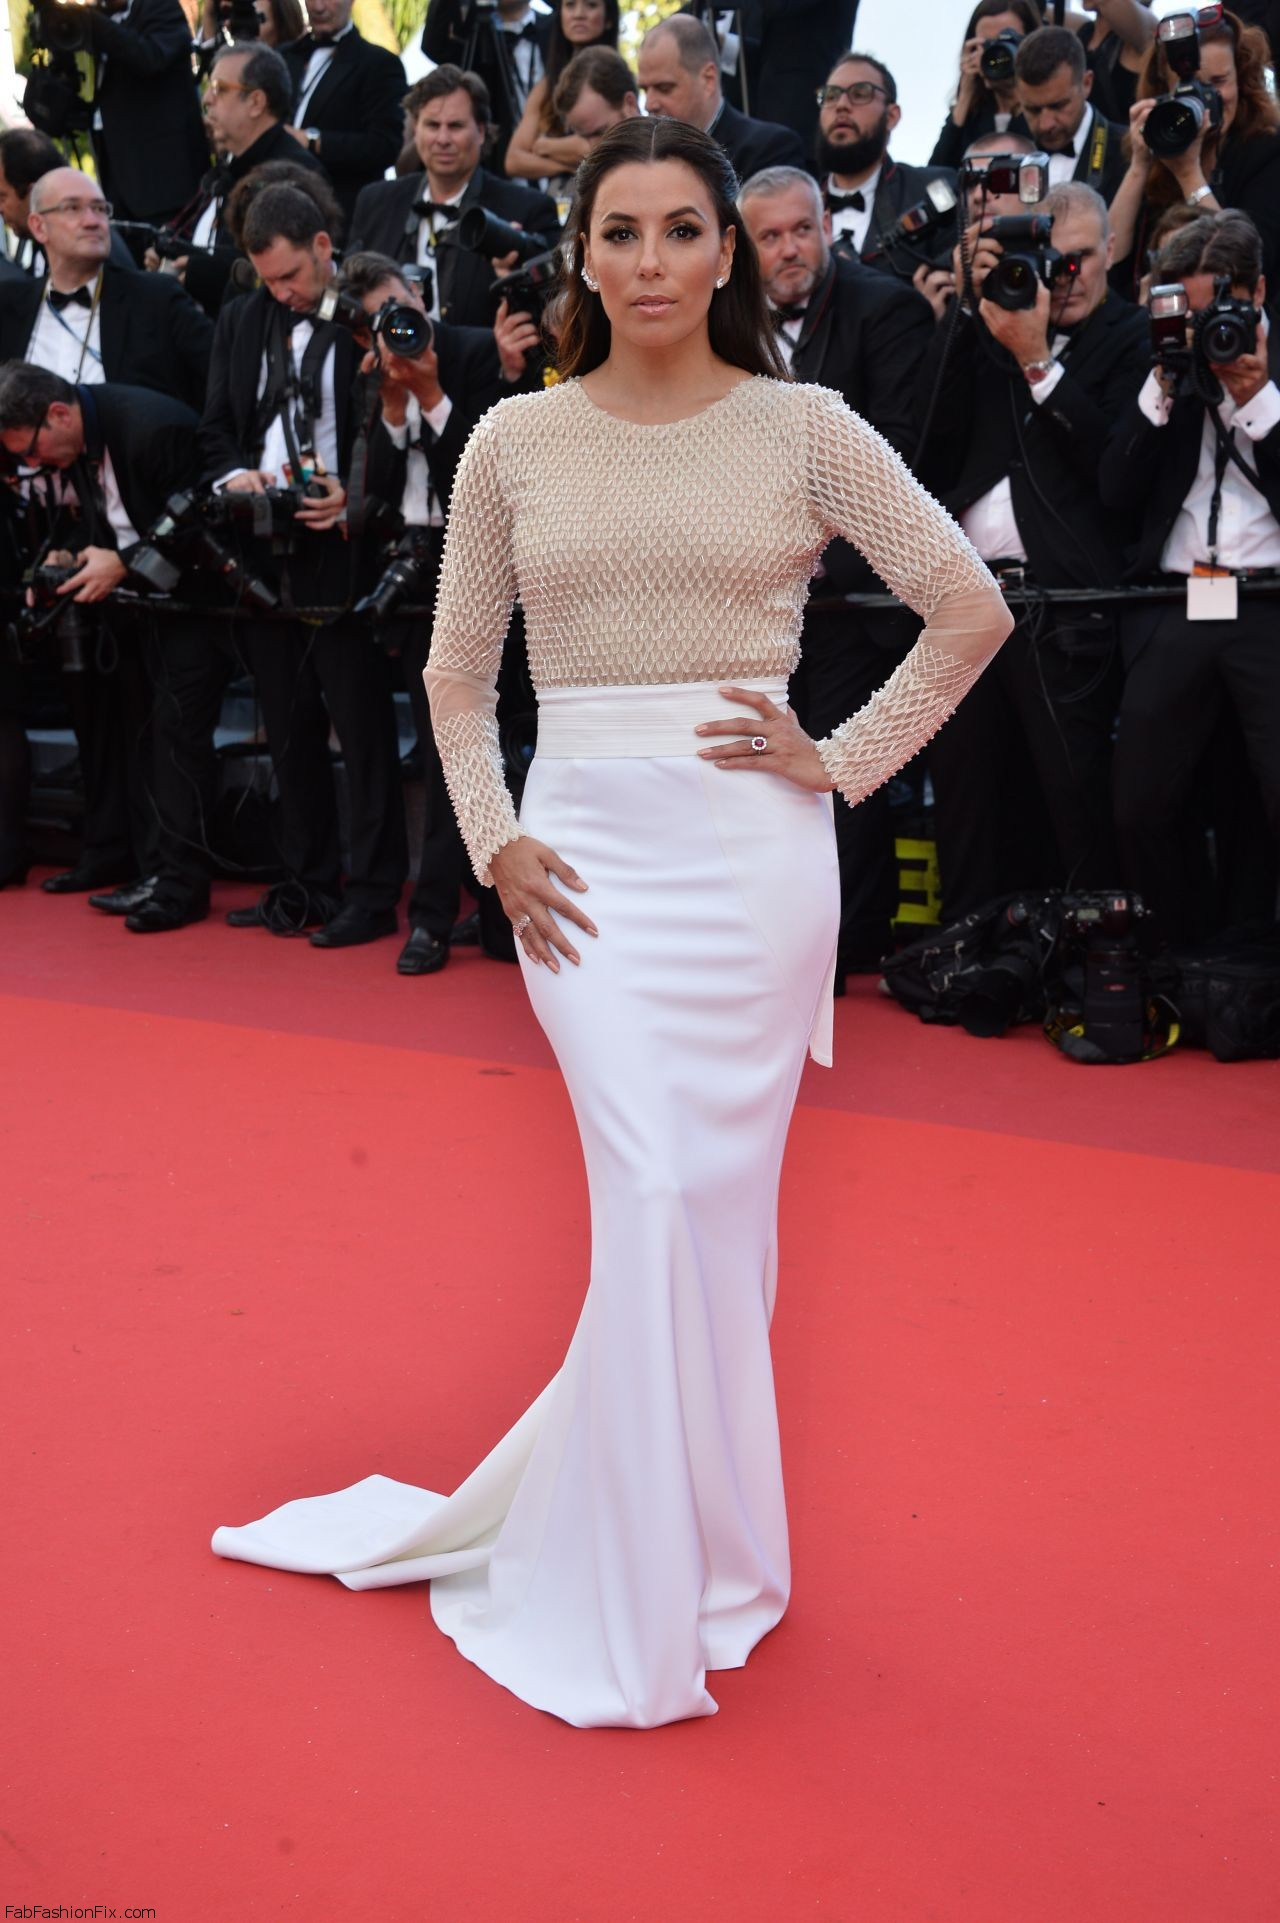 eva-longoria-cafe-society-premiere-and-the-opening-night-gala-2016-cannes-film-festival-7